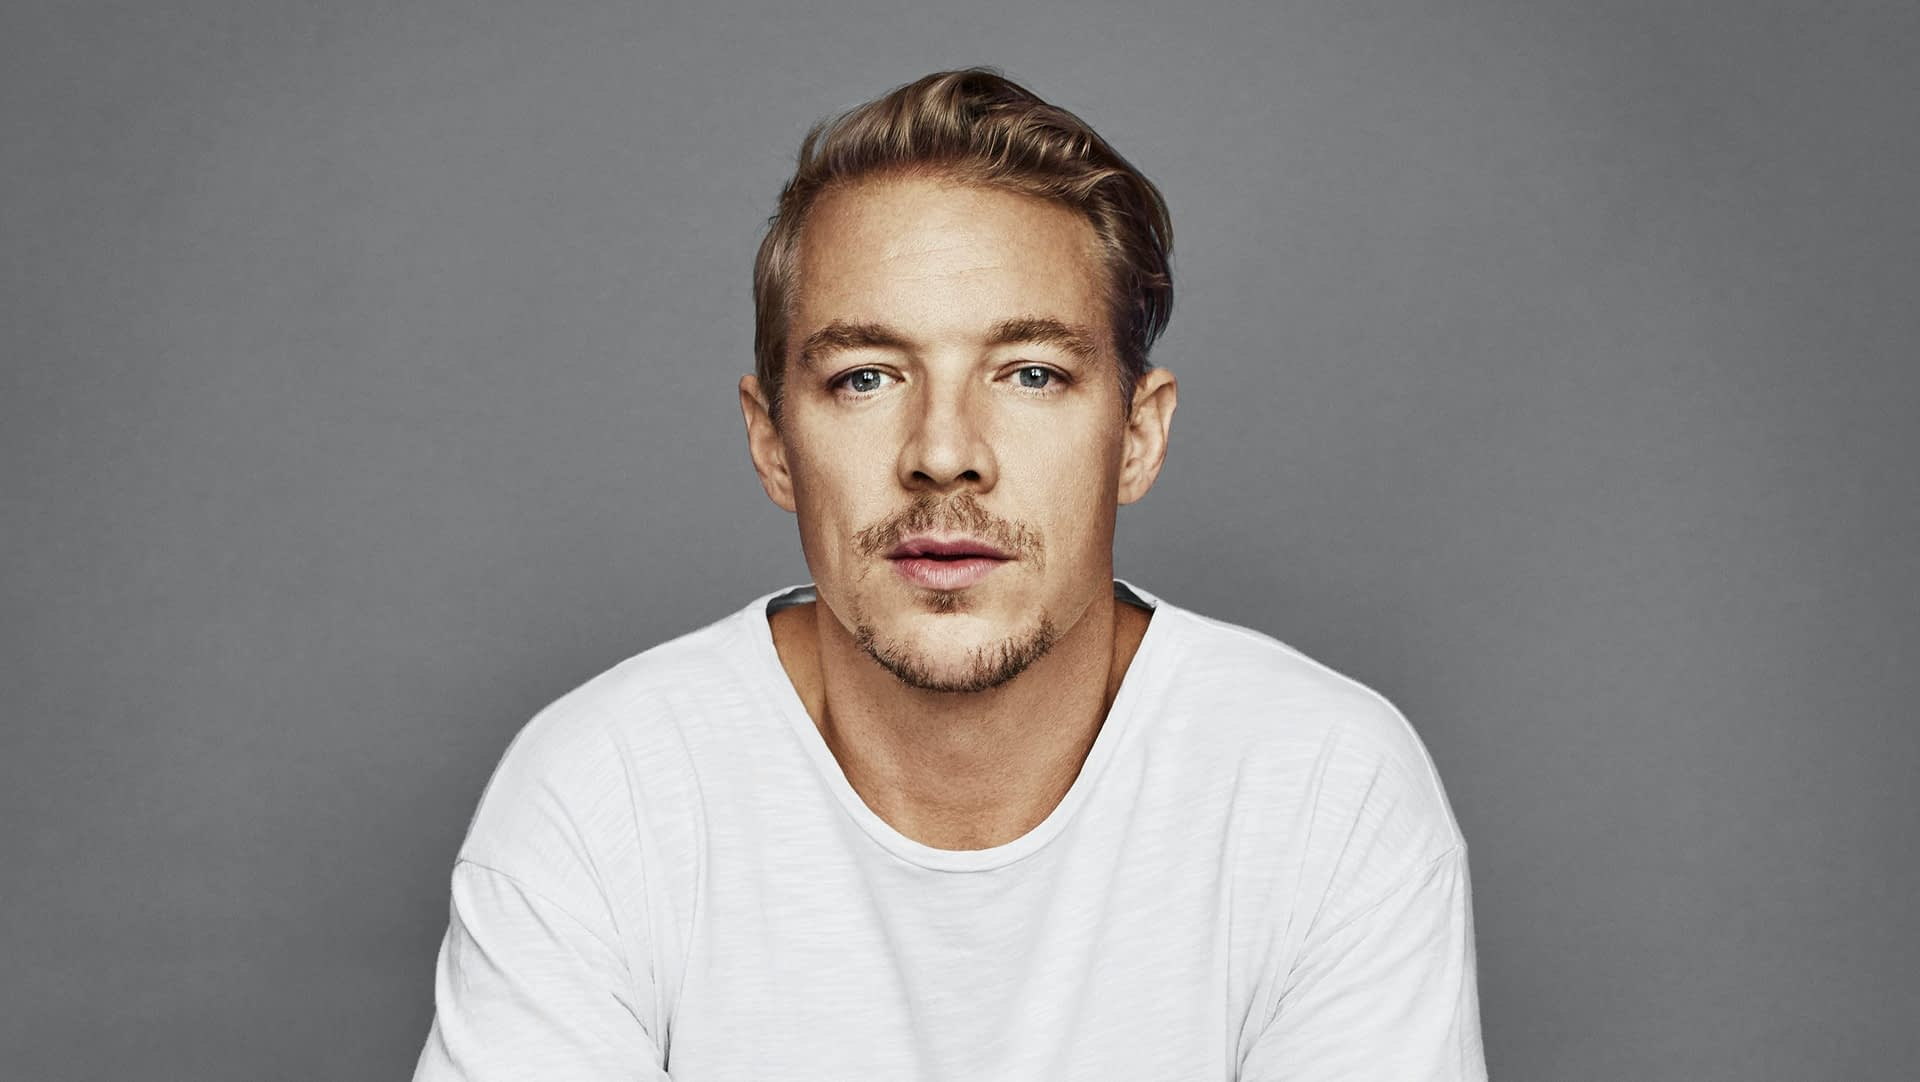 https  edm.com .image MTUzNzE4NDIyNzU5Mjg2NDMw diplo scaled - How much do you know about the EDM industry? #4